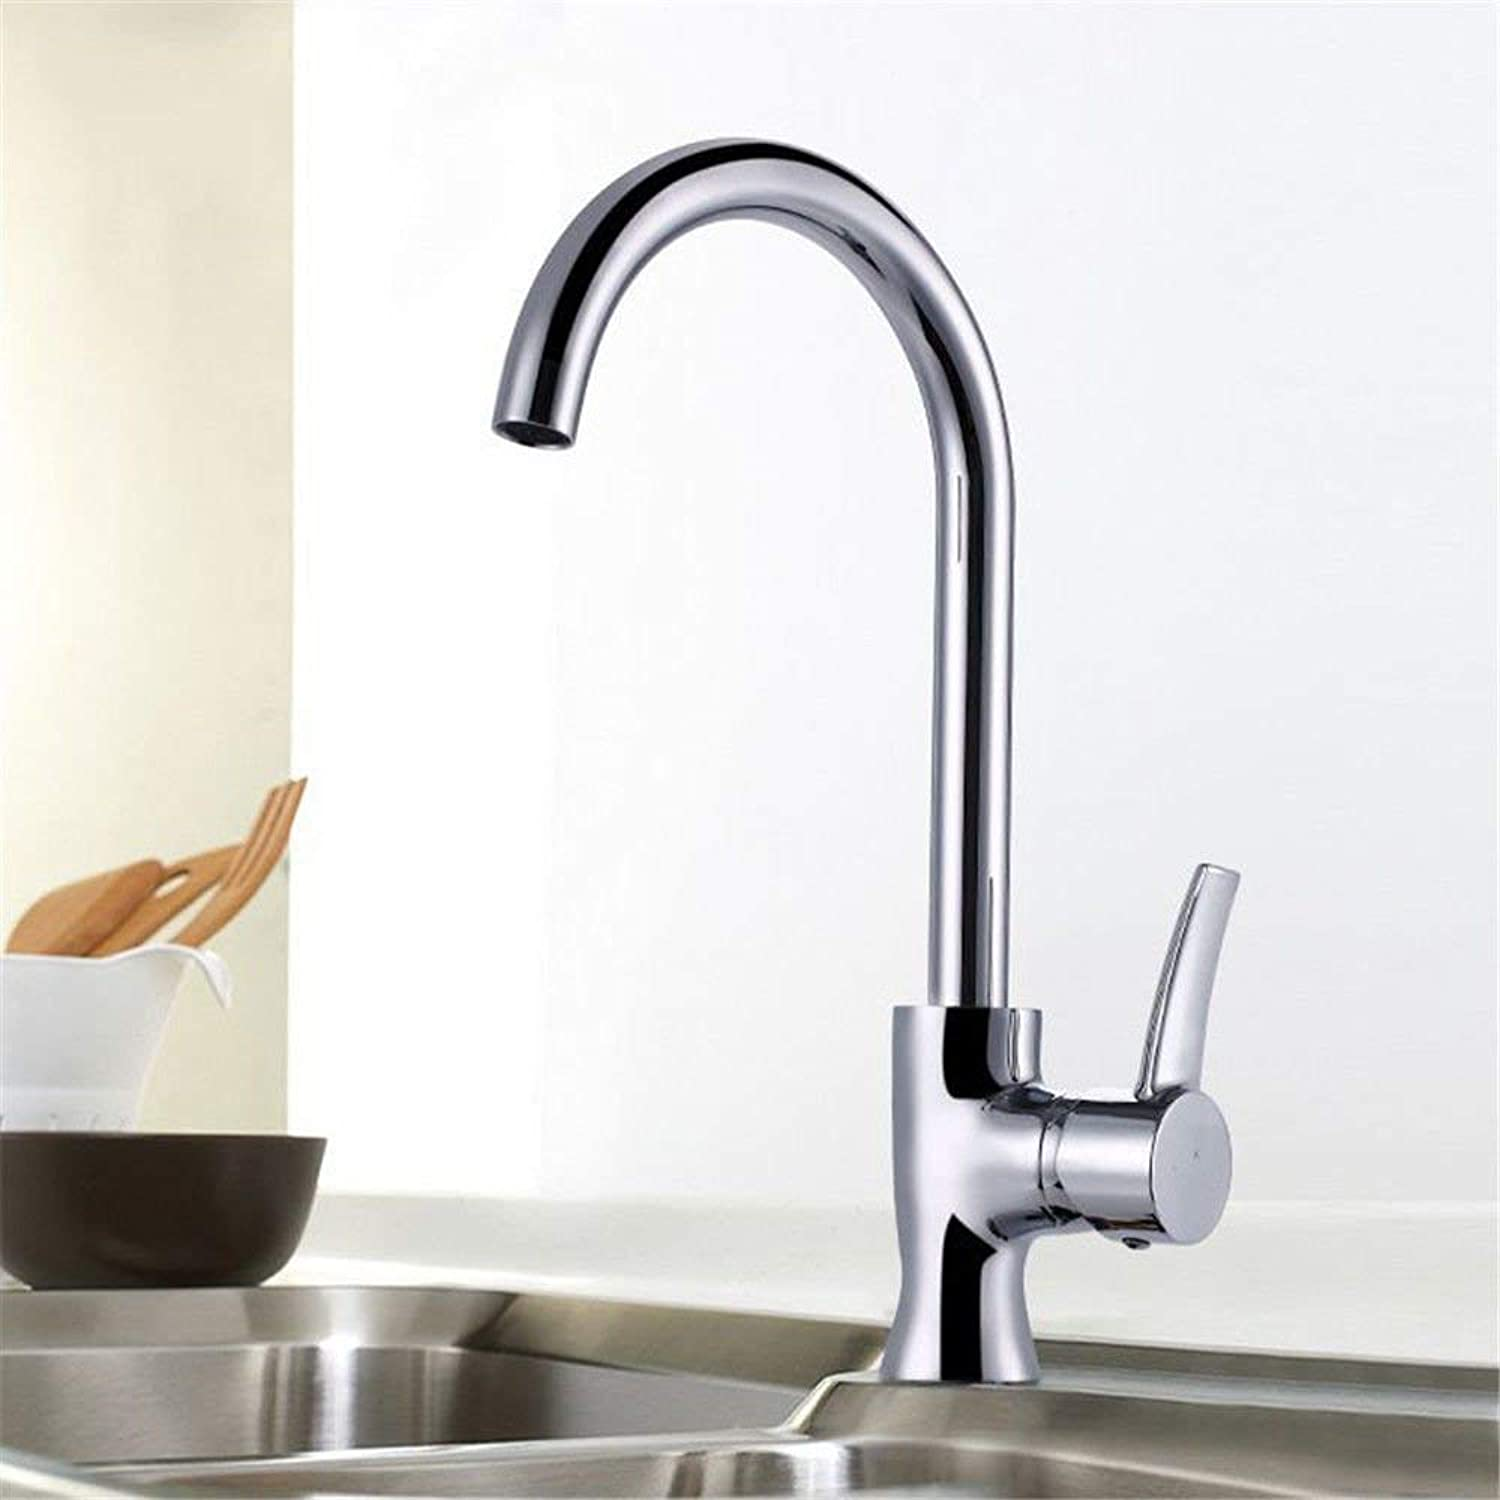 Oudan Kitchen Sink Mixer tap Solid Brass hot and Cold Round Sink Faucet (color   -, Size   -)